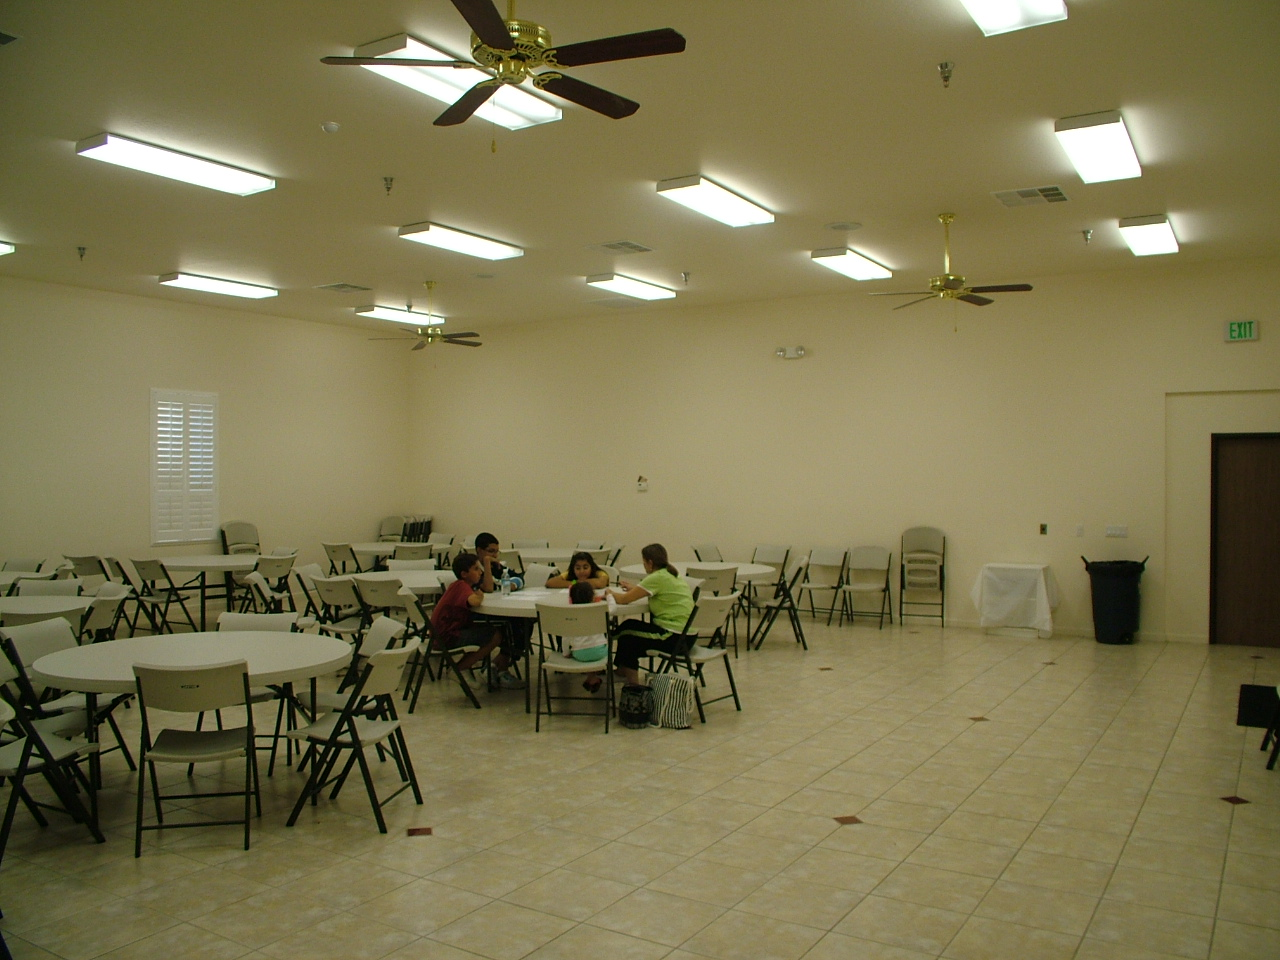 10-21-09websitephotos 021